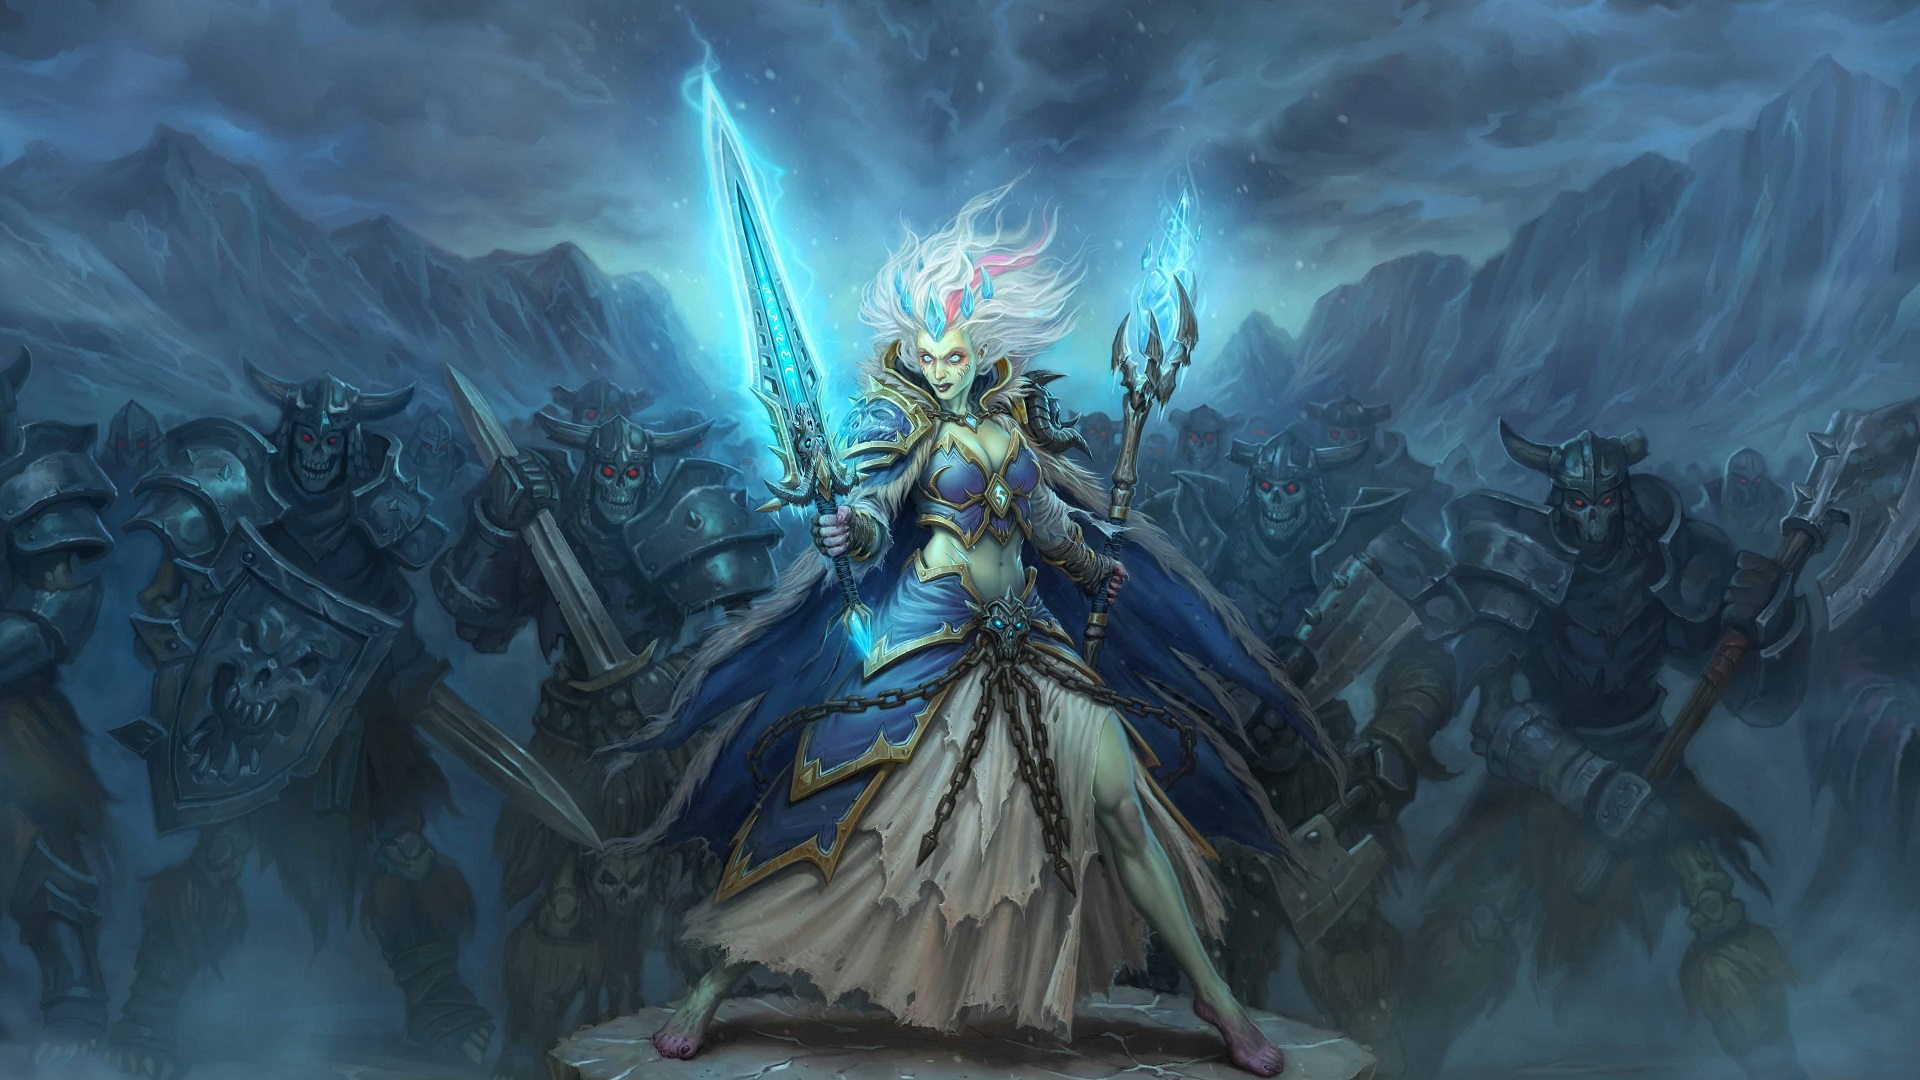 General 1920x1080 Hearthstone: Heroes of Warcraft Hearthstone Warcraft cards artwork Knights of the frozen throne Death Knight Jaina Proudmoore video games